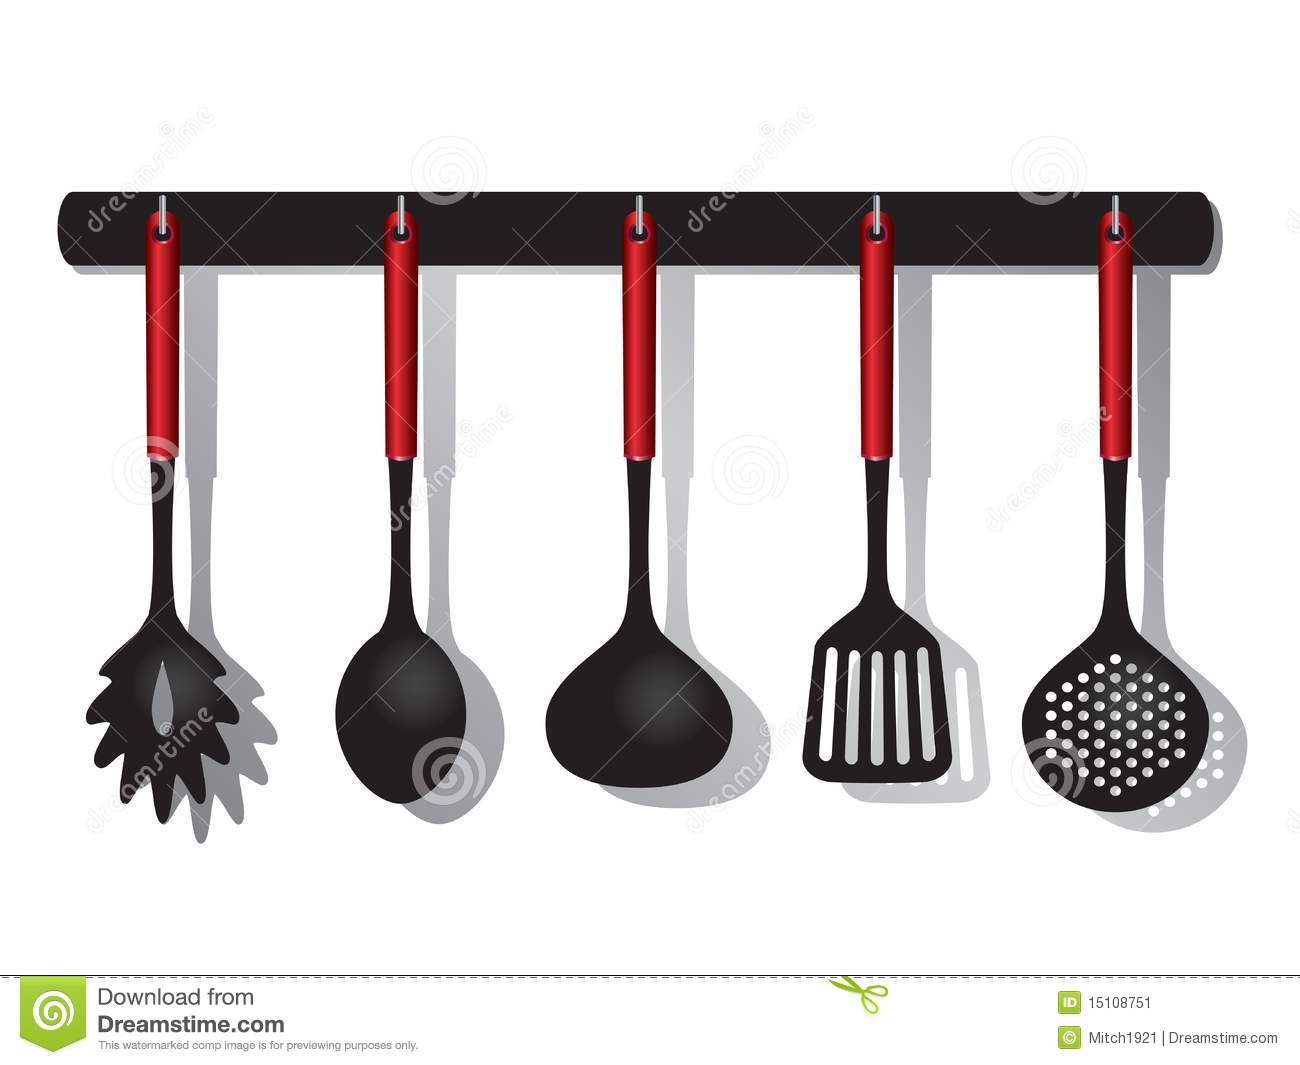 Kitchen Tools Illustration 15108751 - Megapixl on garage design tool, roofing design tool, kitchen designer, door design tool, tile design tool, spa design tool, clothing design tool, kitchen layout planning tools, camera design tool, kitchen products, kitchen bar designs, kitchen ideas, paint design tool, kitchen press tool, bathroom design tool, kitchen tools names, front porch design tool, mudroom design tool, kitchen planning tool online, kitchen designs house,